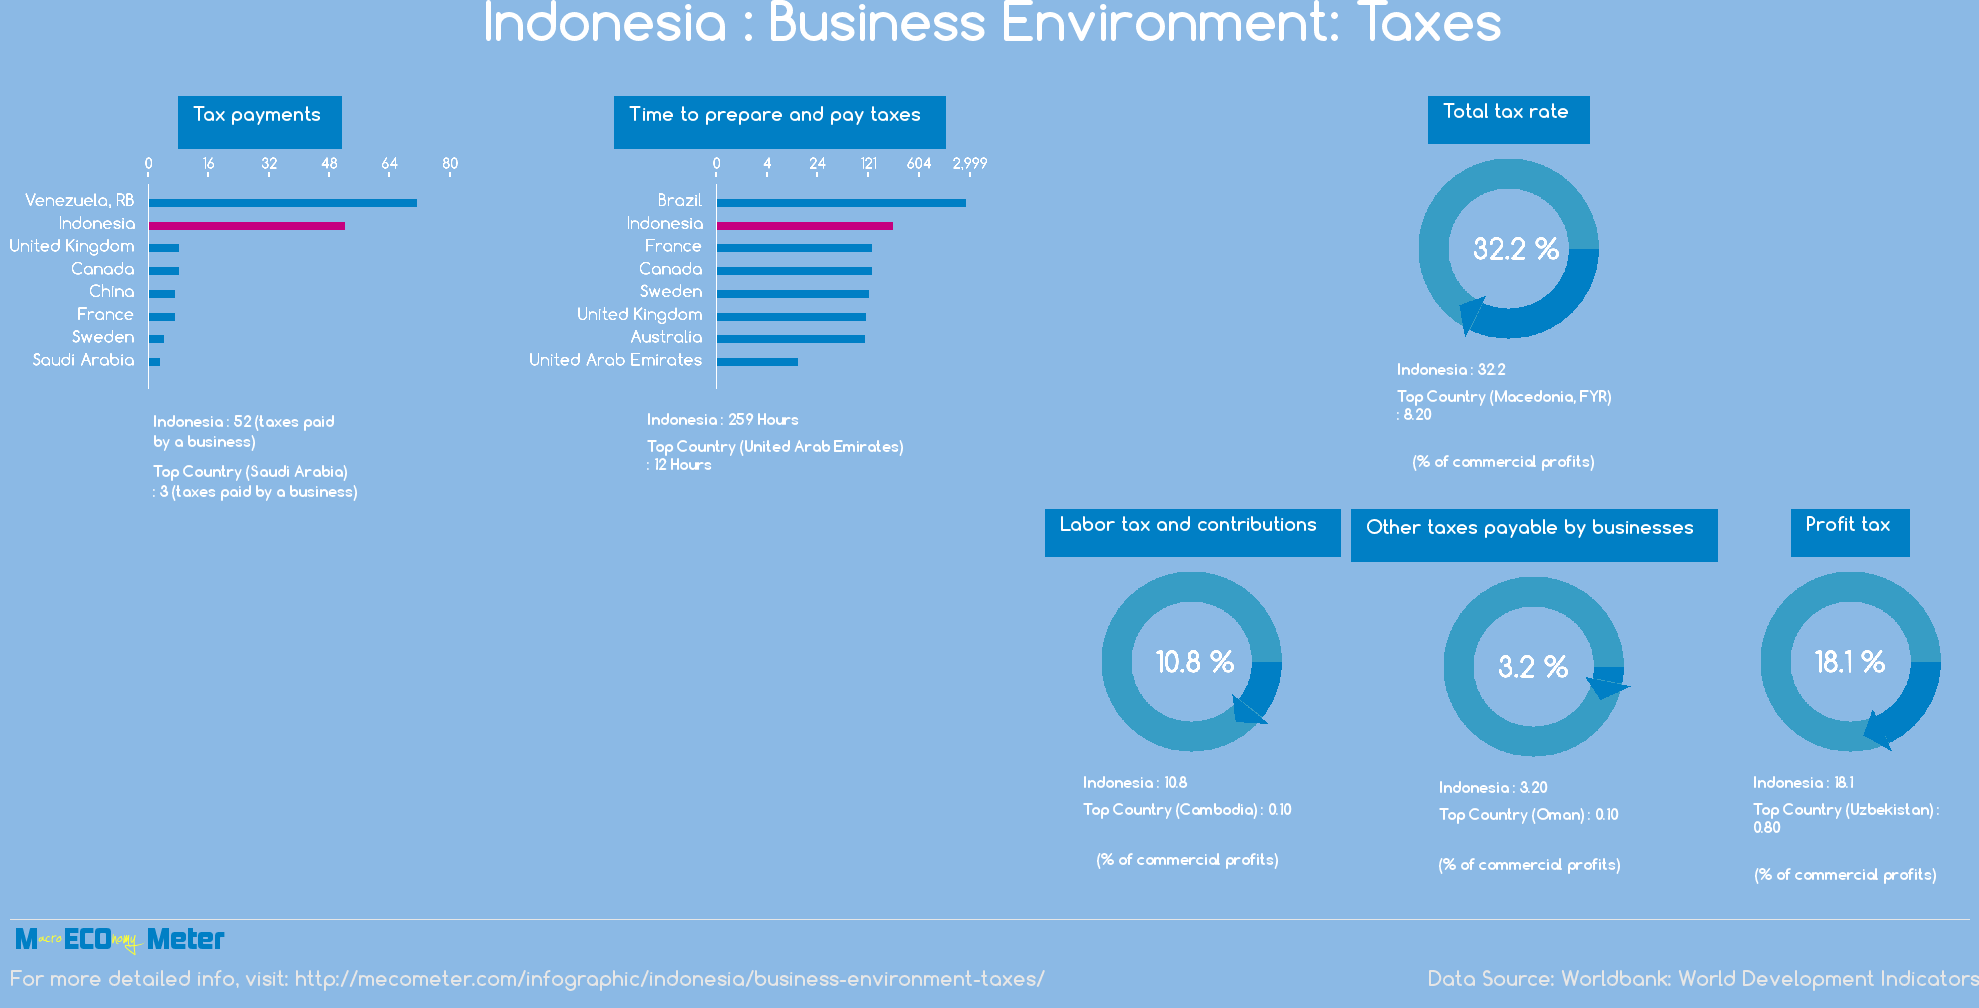 Indonesia : Business Environment: Taxes